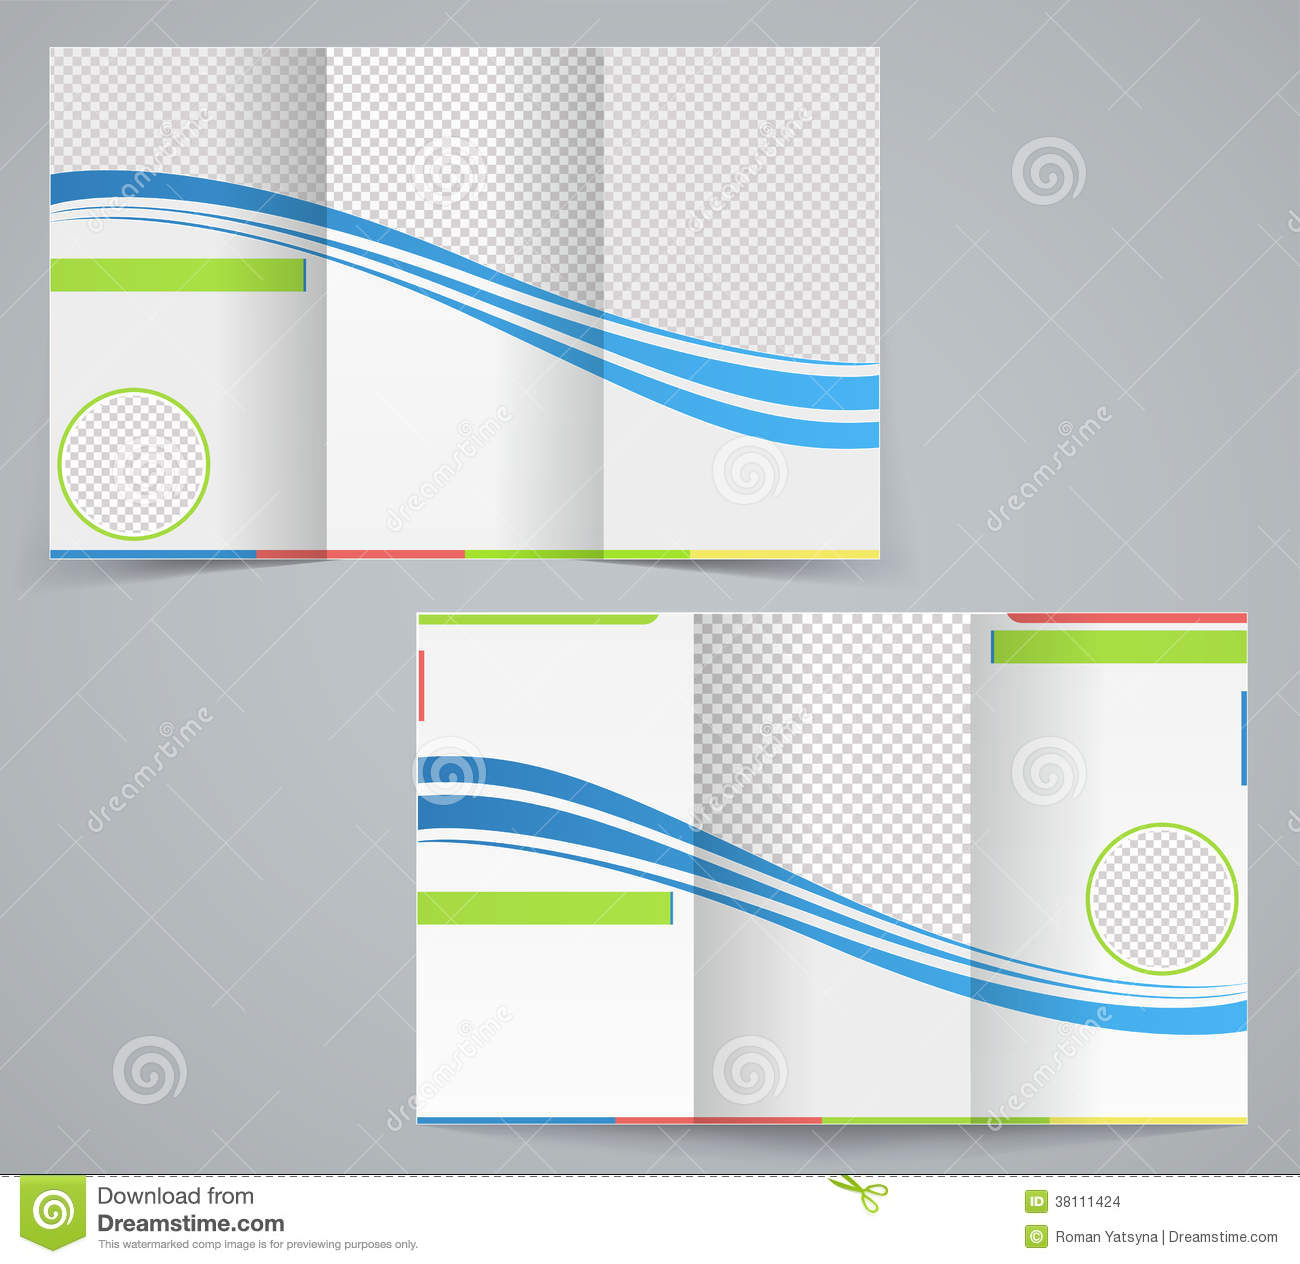 Tri fold business brochure template stock vector for Tri fold brochure templates free download